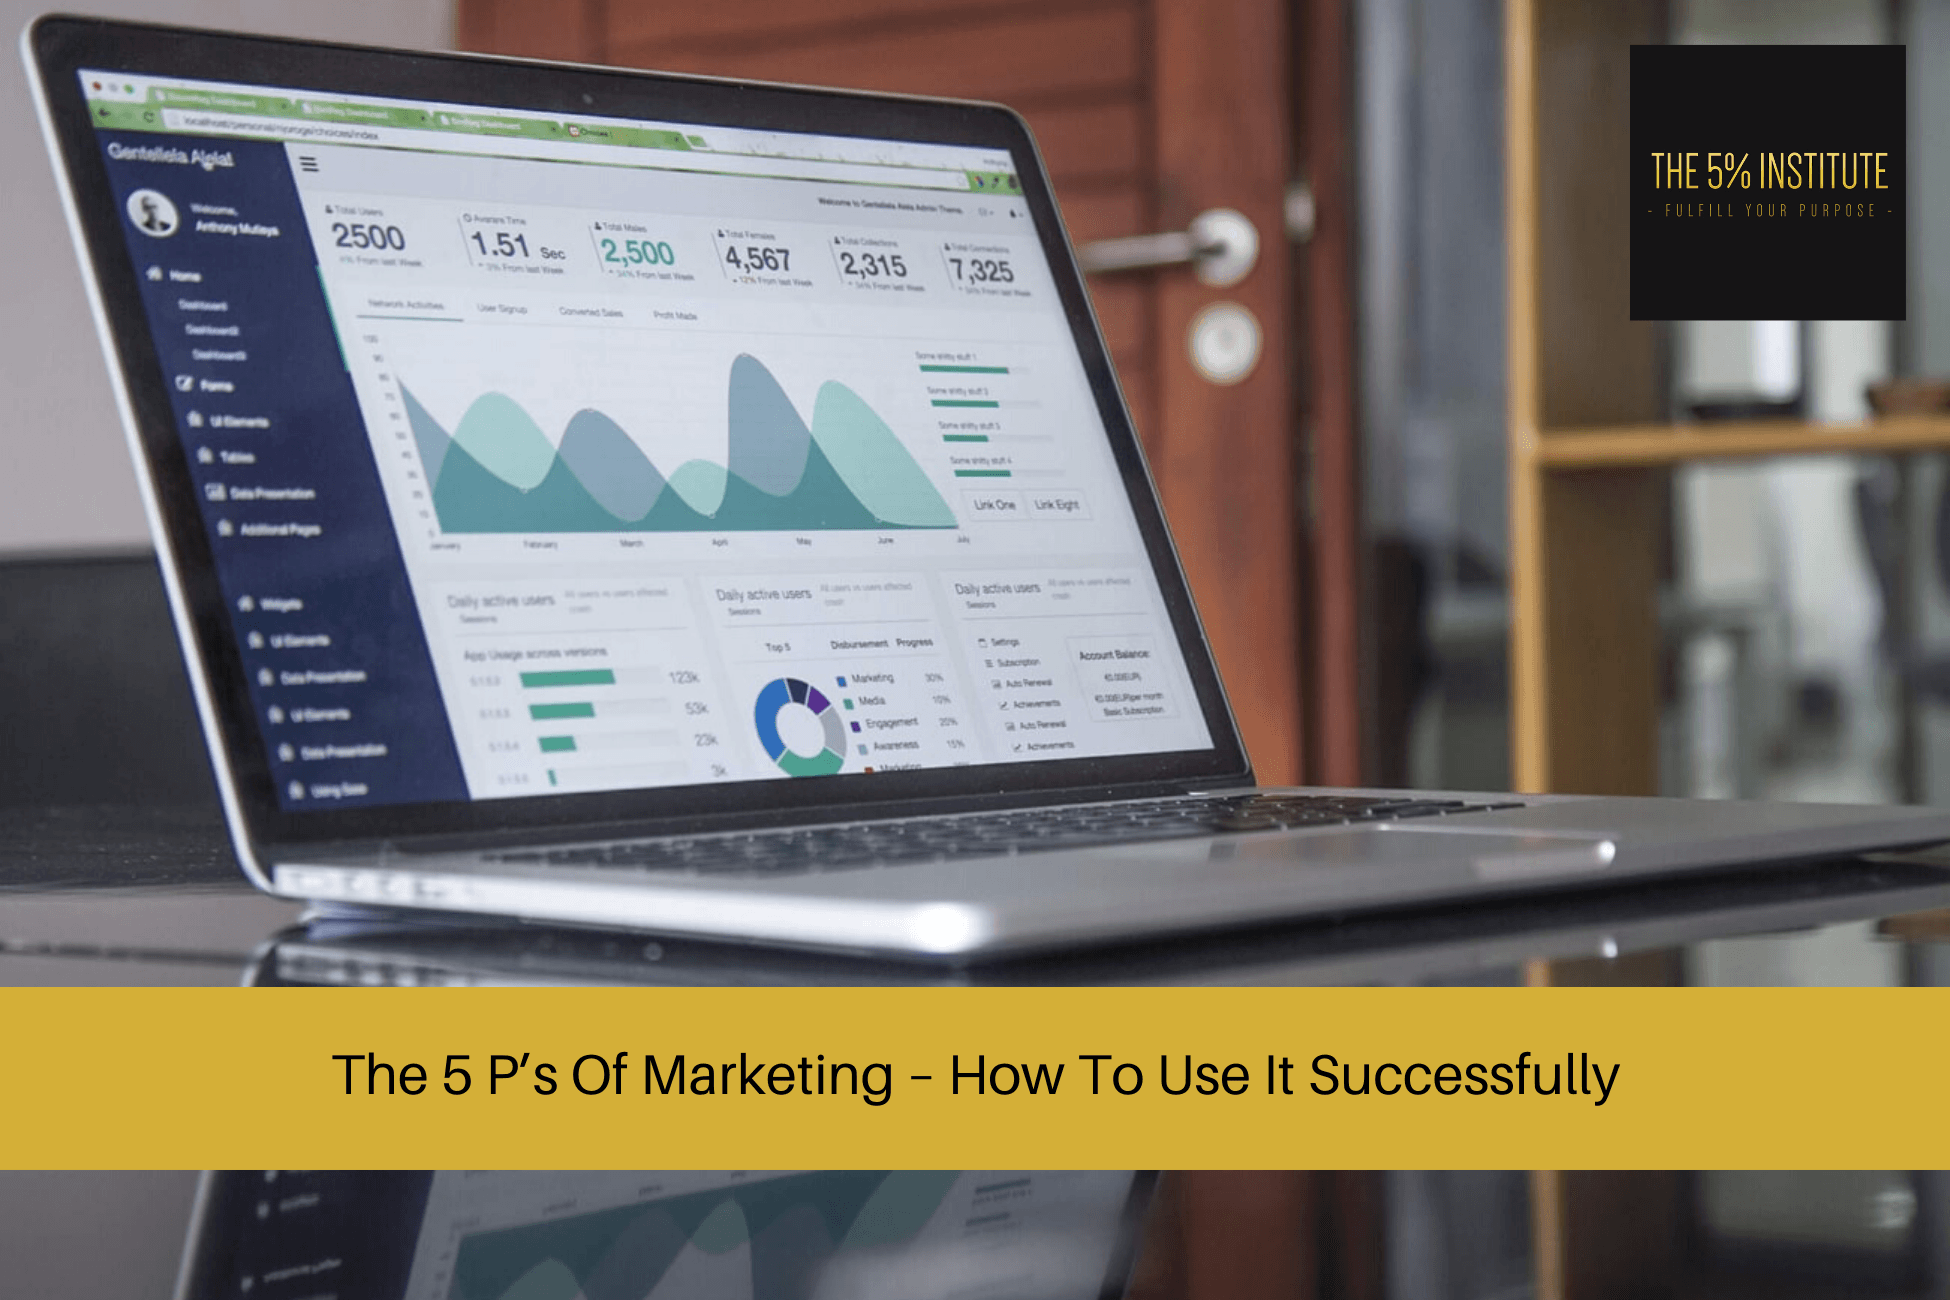 the 5 p's of marketing